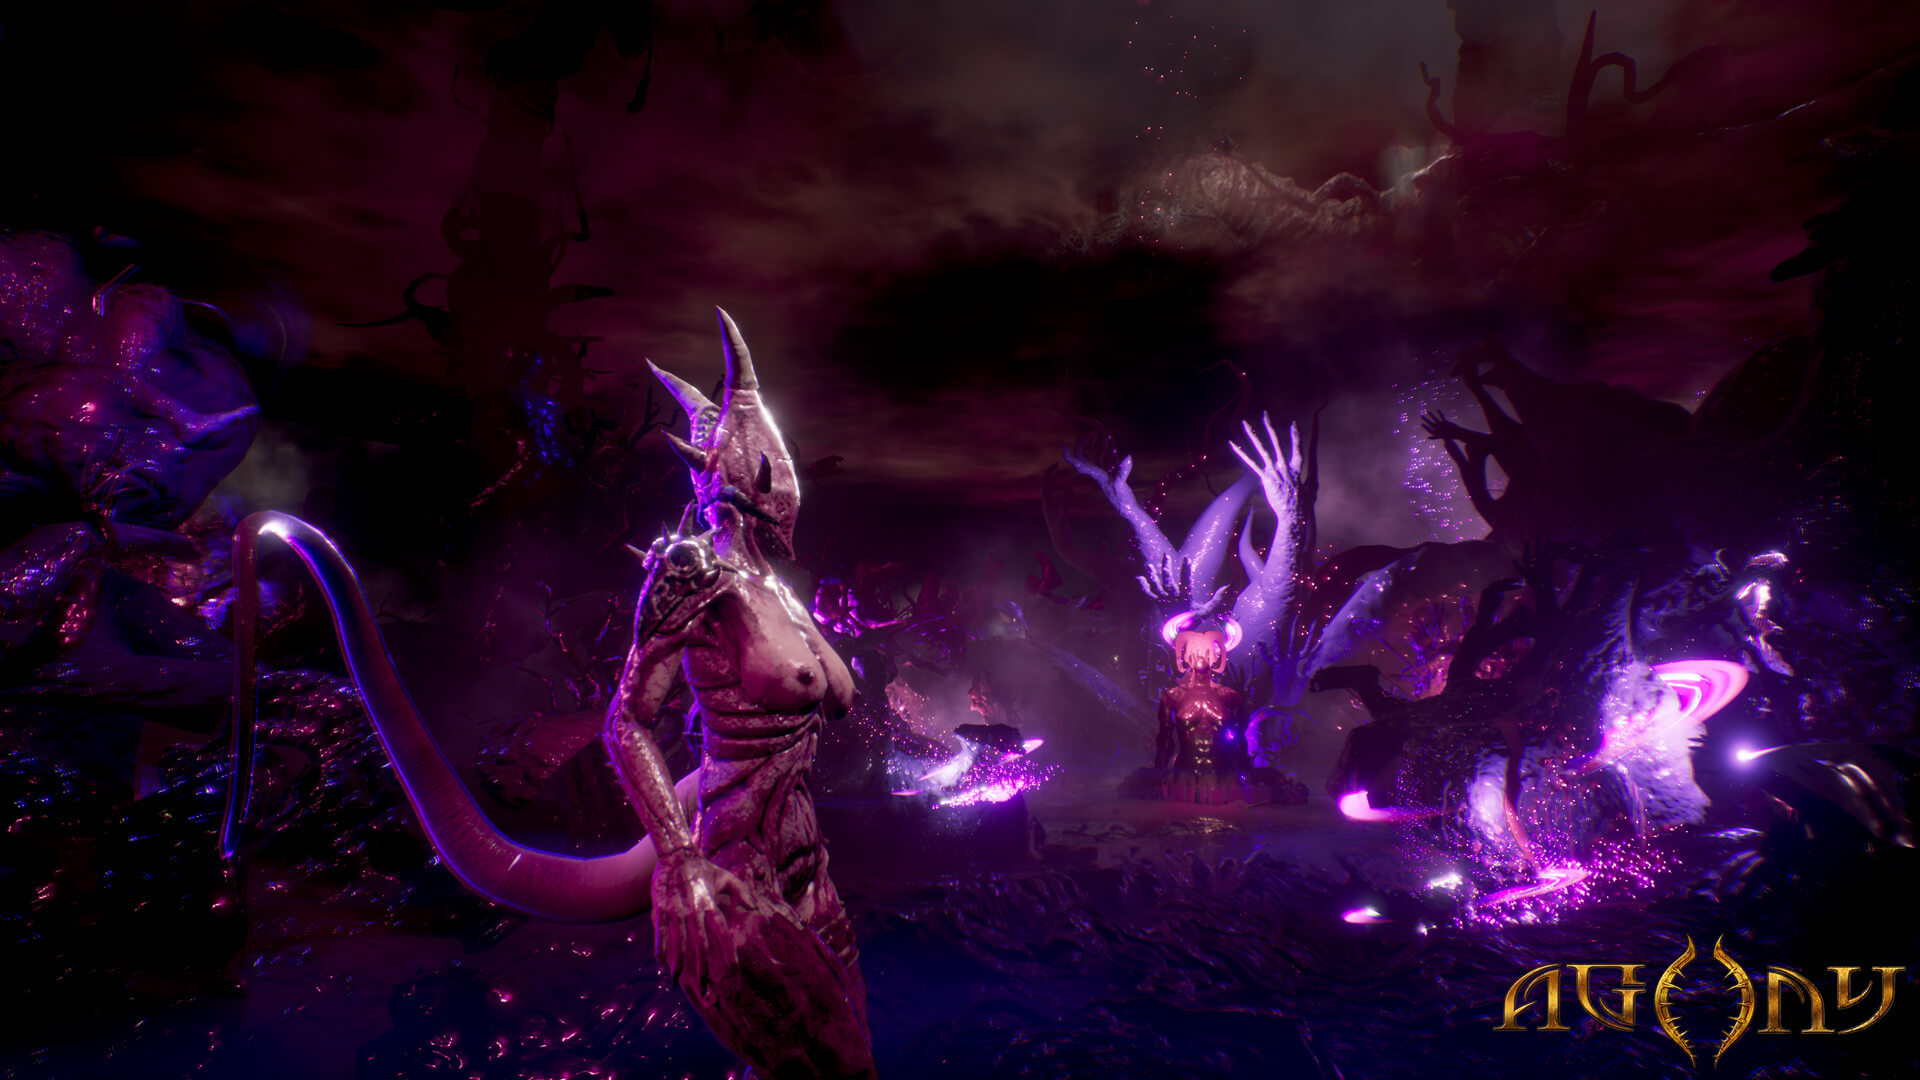 agony hell game9 1 - New Agony Trailers Deliver The Pain